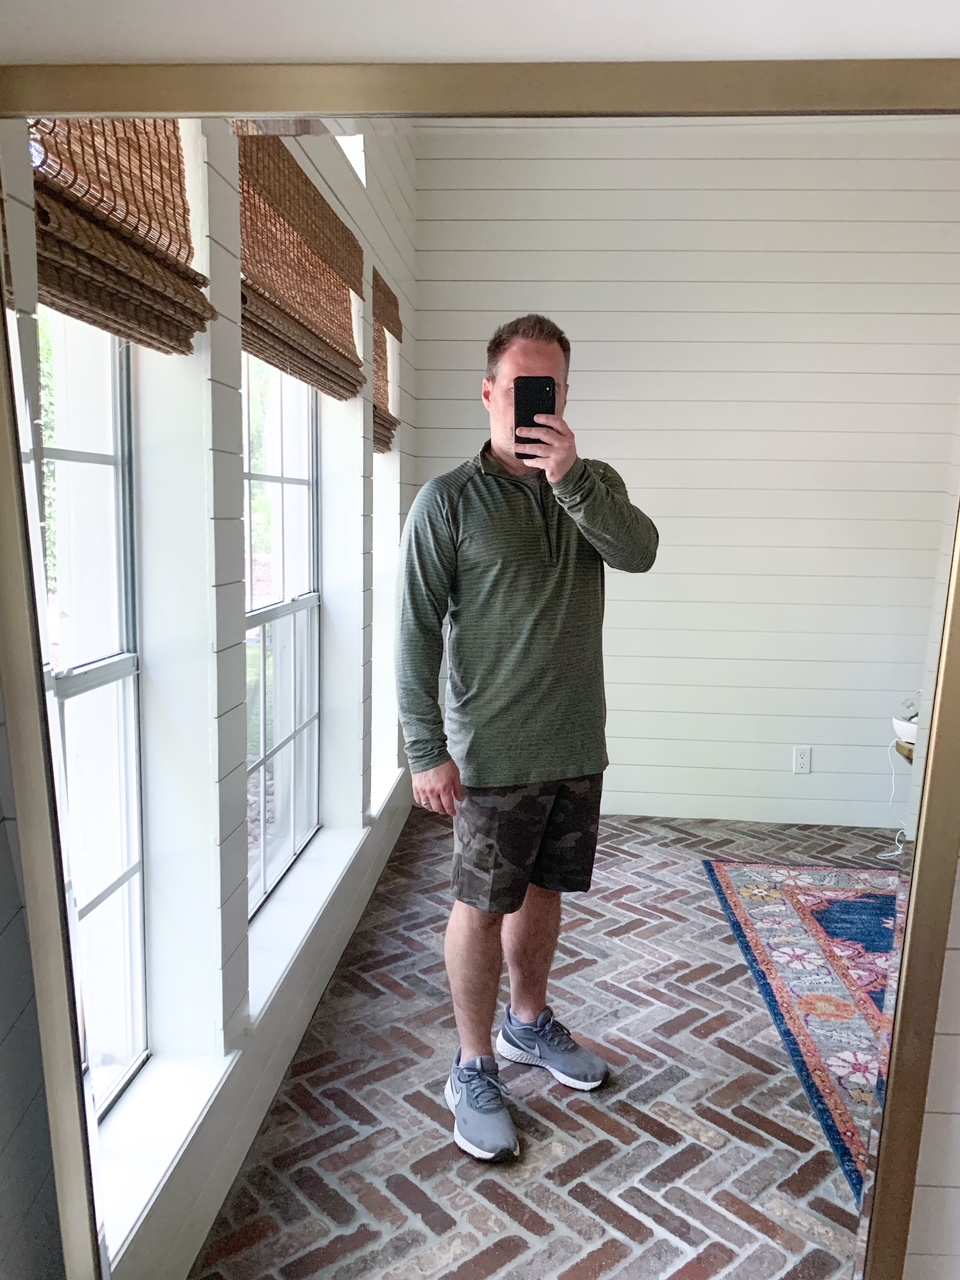 Men's Workout Gear by popular Houston fashion blog, The House of Fancy: image of a man wearing a Lululemon long sleeve pullover, Lululemon shorts, and grey athletic shoes.